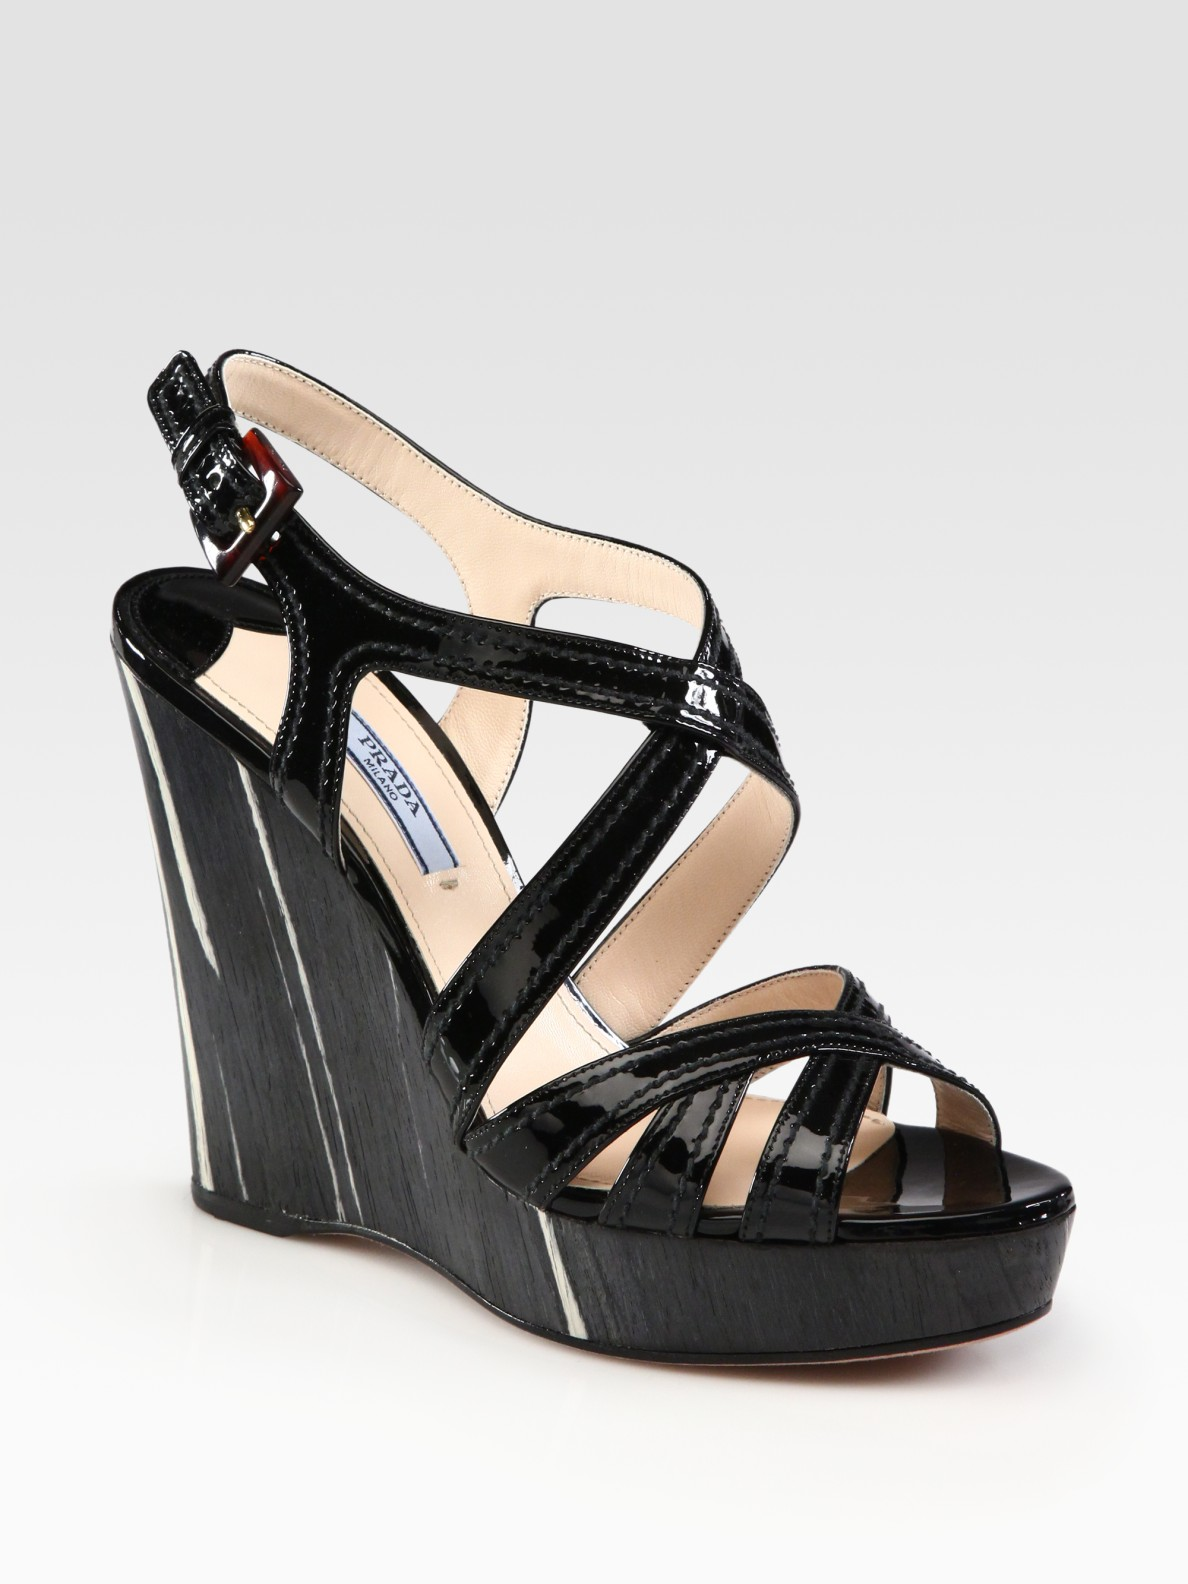 Prada Patent Leather And Wood Criss-cross Wedge Sandals In